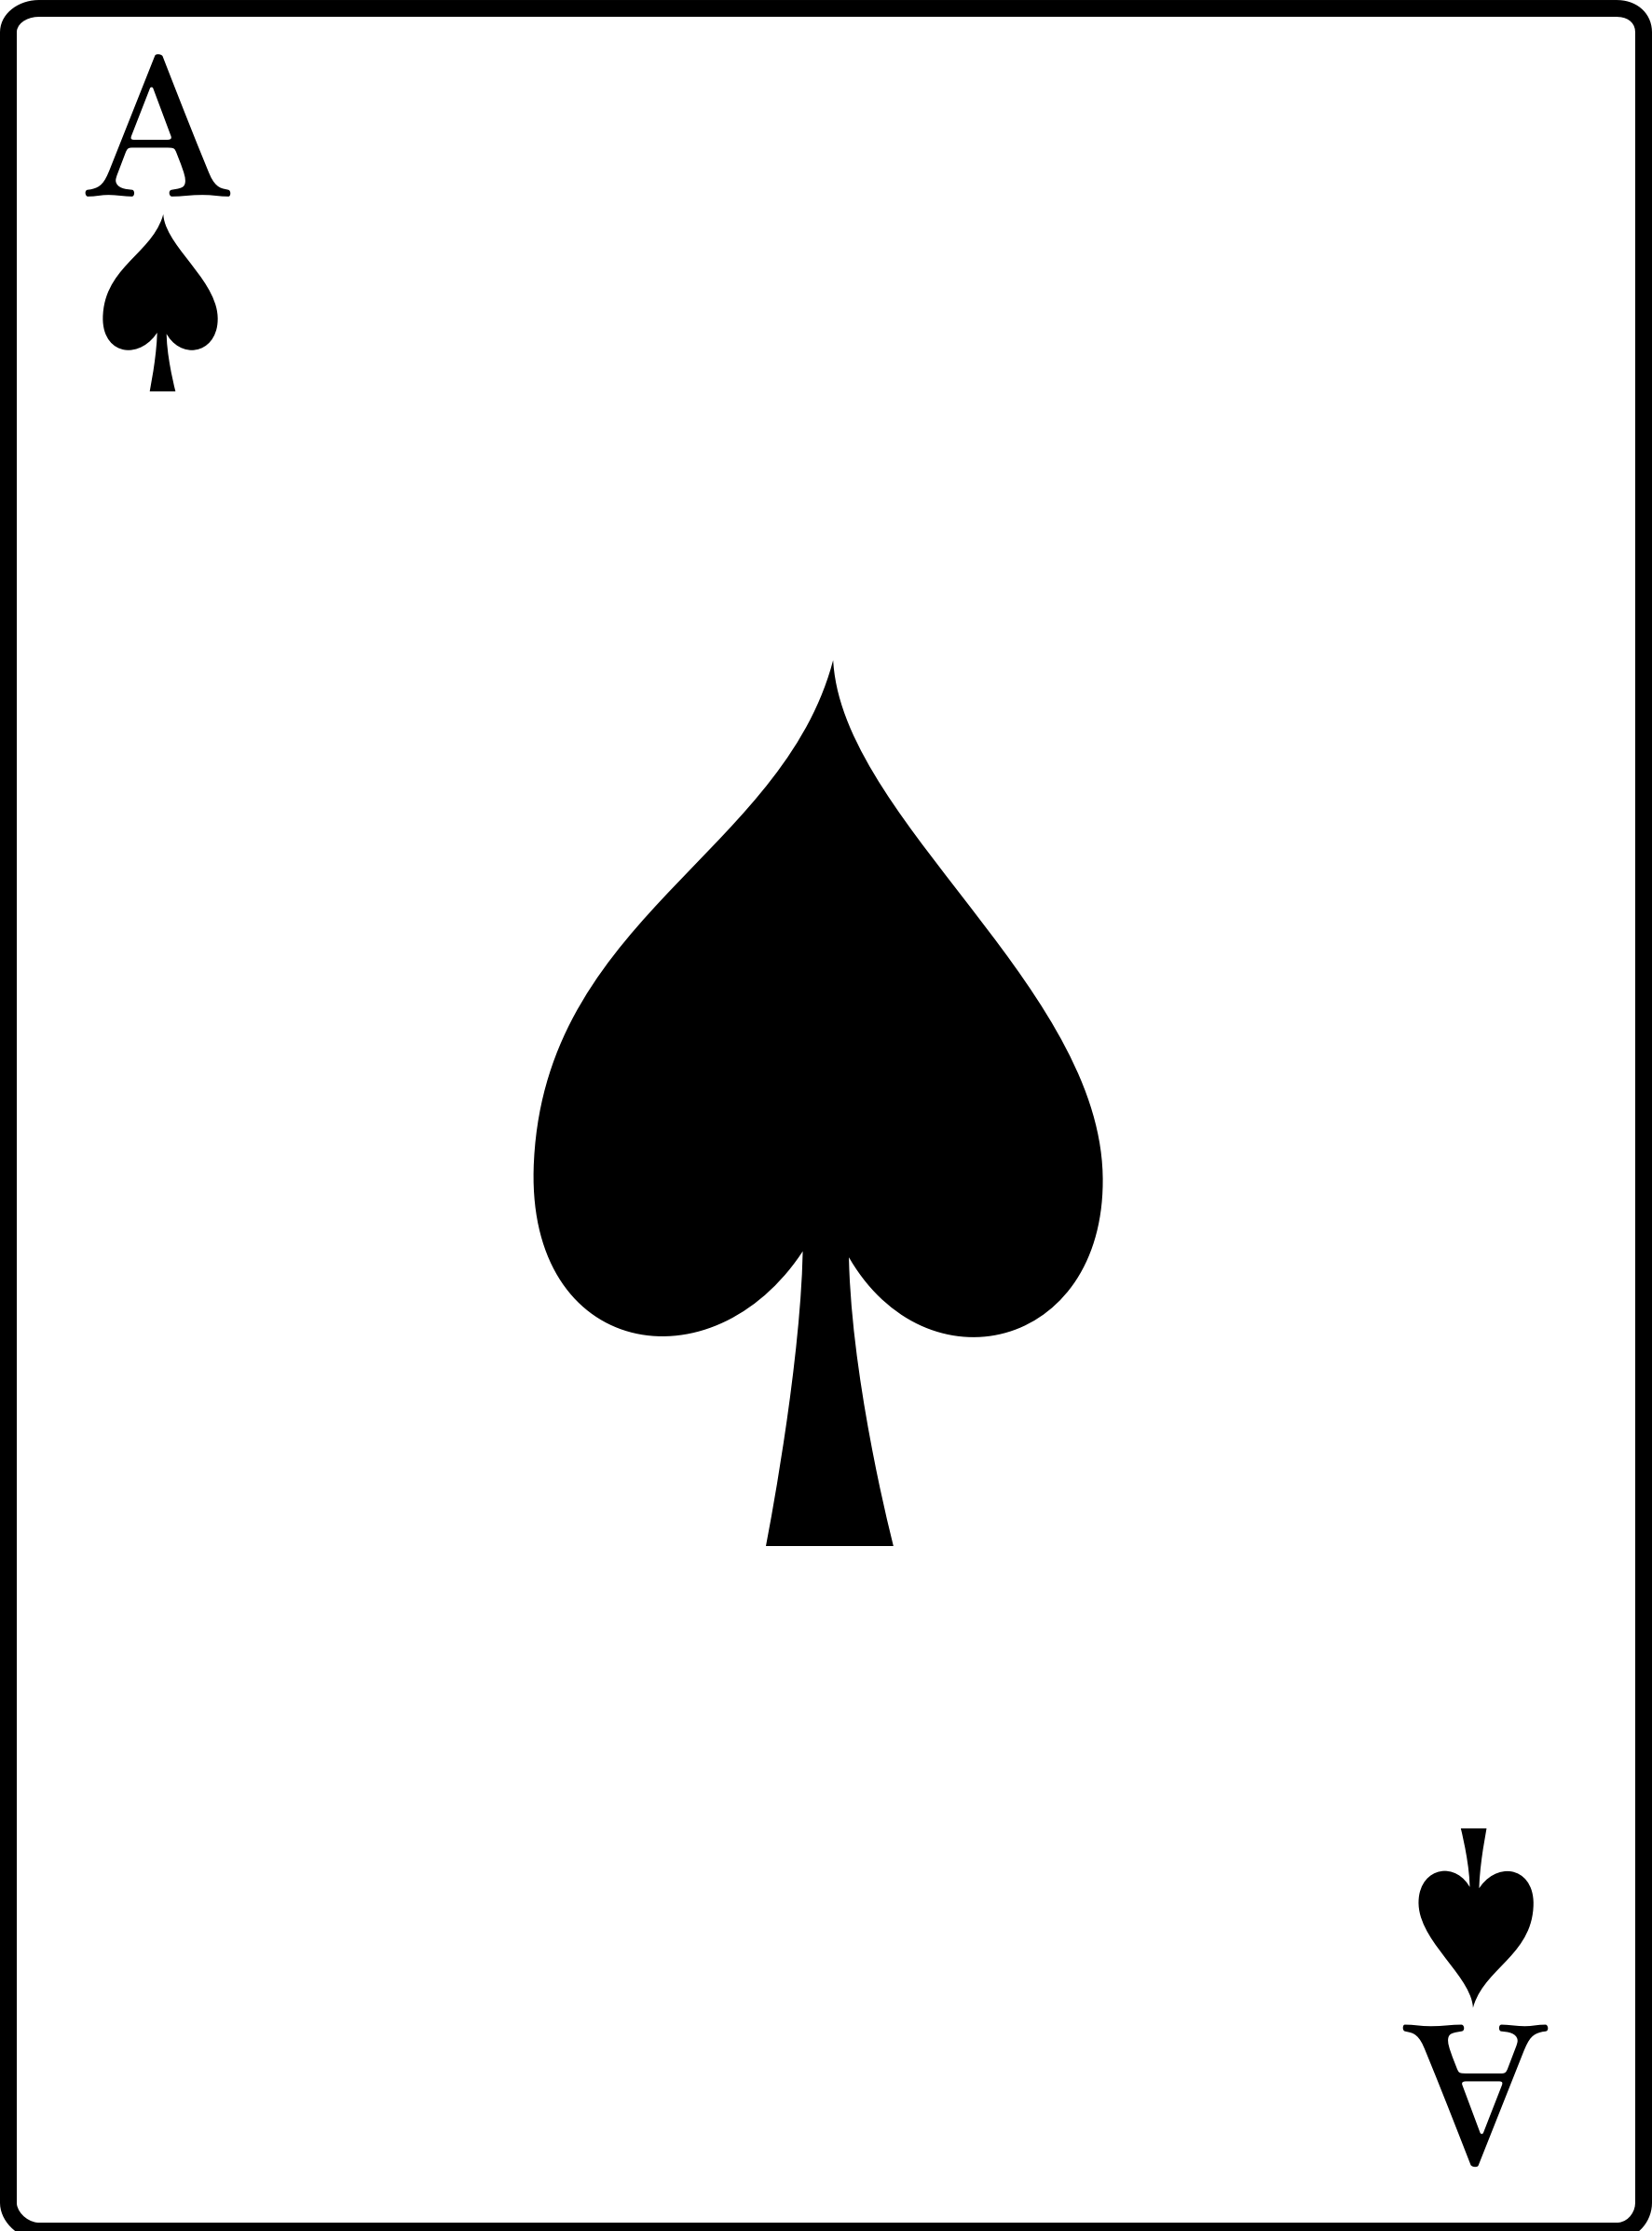 . Ace of spades clipart